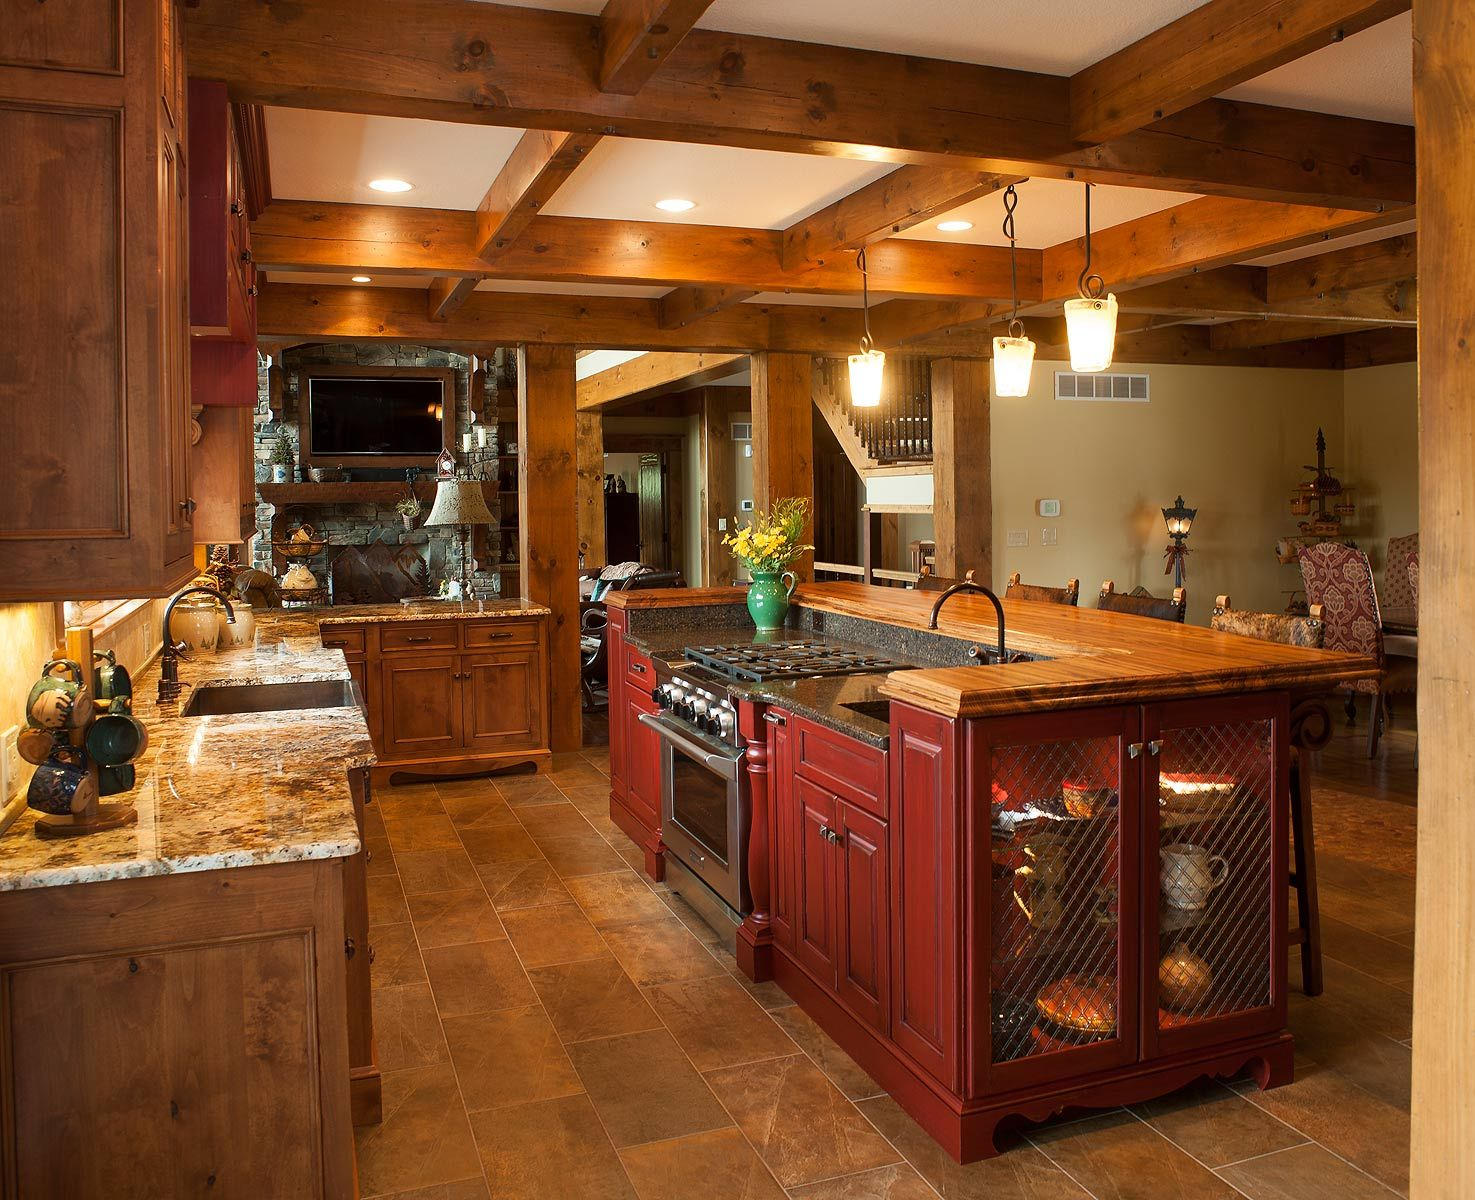 Rustic Kitchens Rustic Kitchen Made With Knotty Alder Wood Love Thus Kitchen